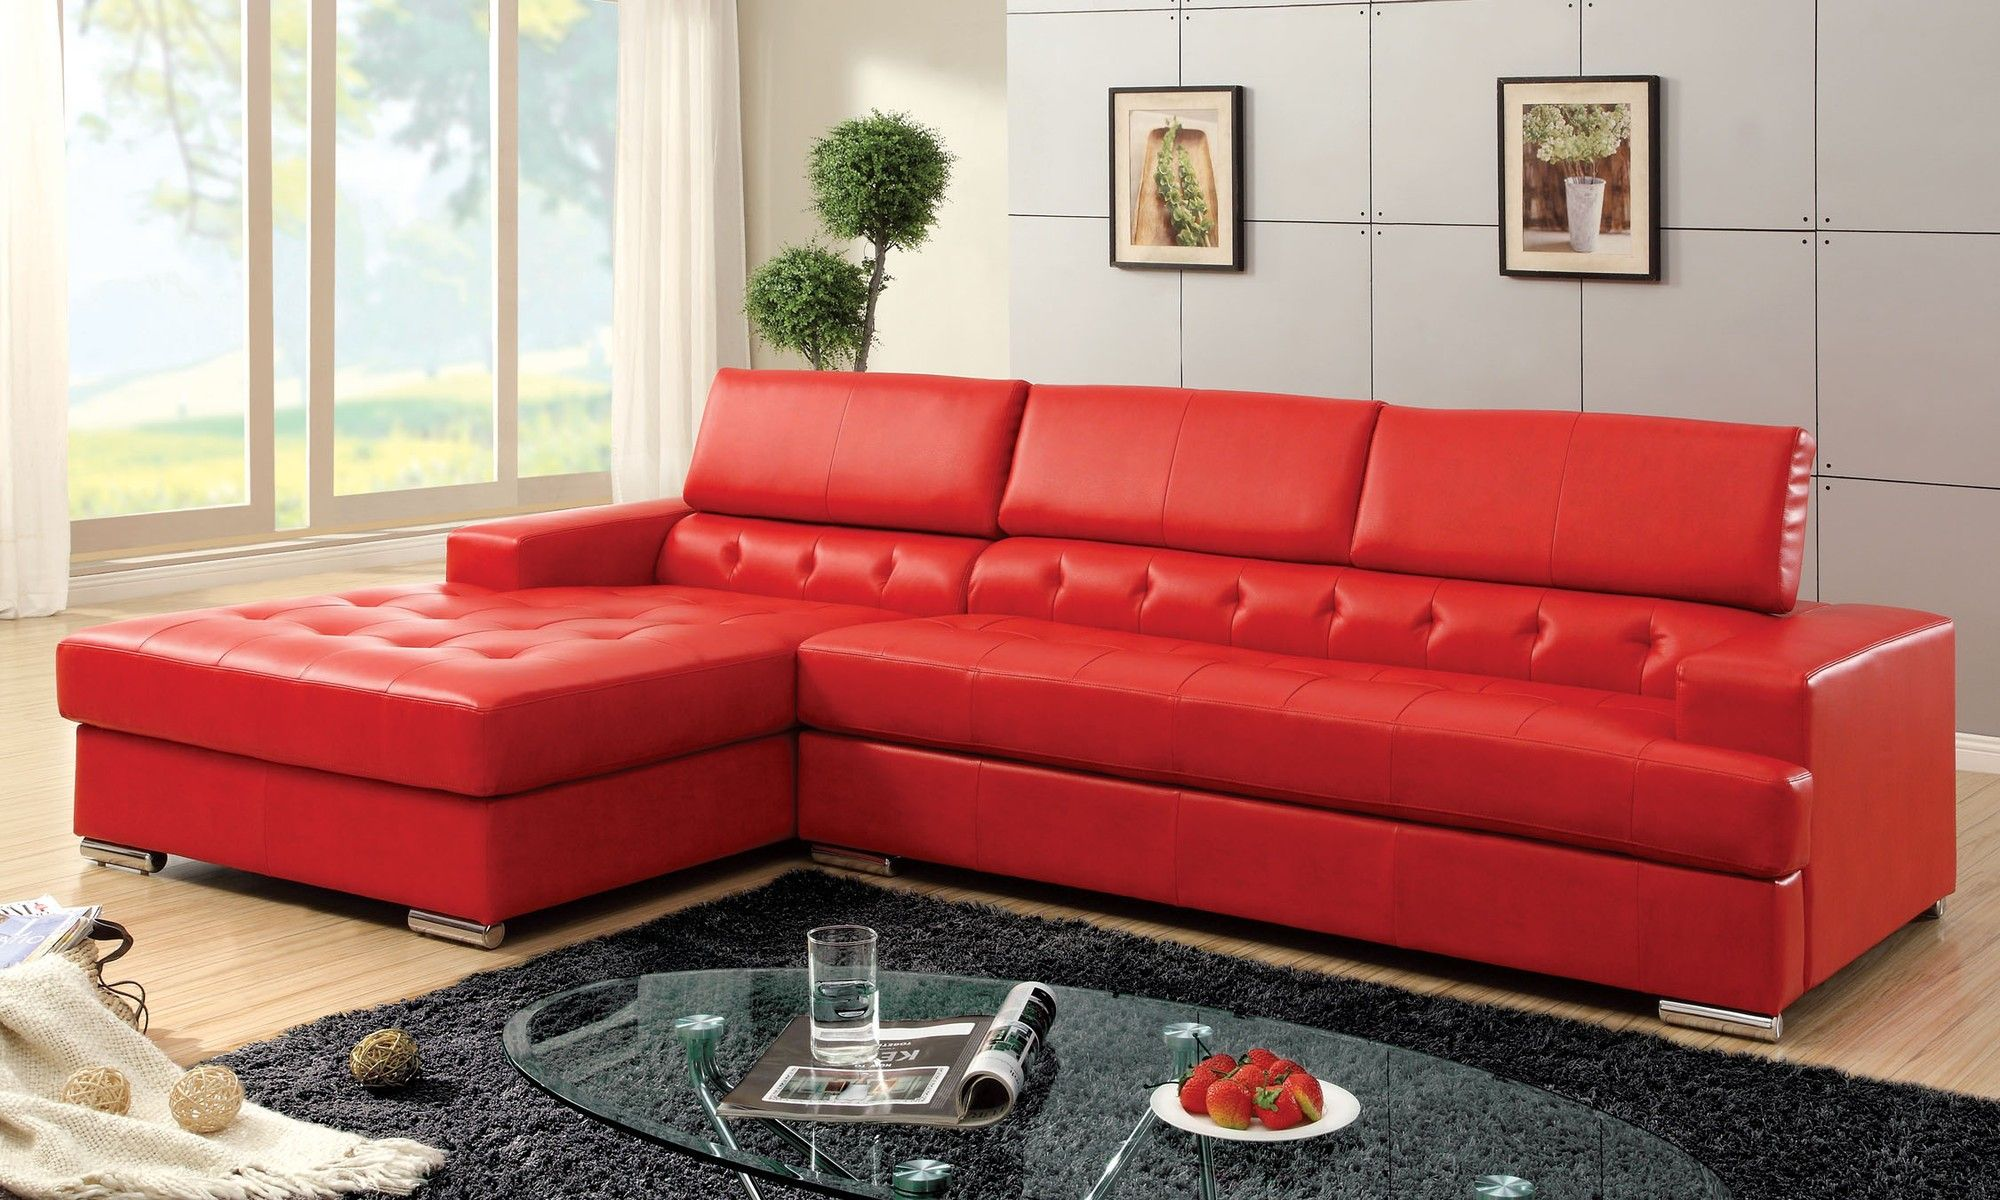 Sofa With Tufted Chaise Mixed Rectangle Black Fur Rug Red Leather Coucheshome Furnishings Kitchens Appliances Sofas Beds Ikeaikea Home Furnishings